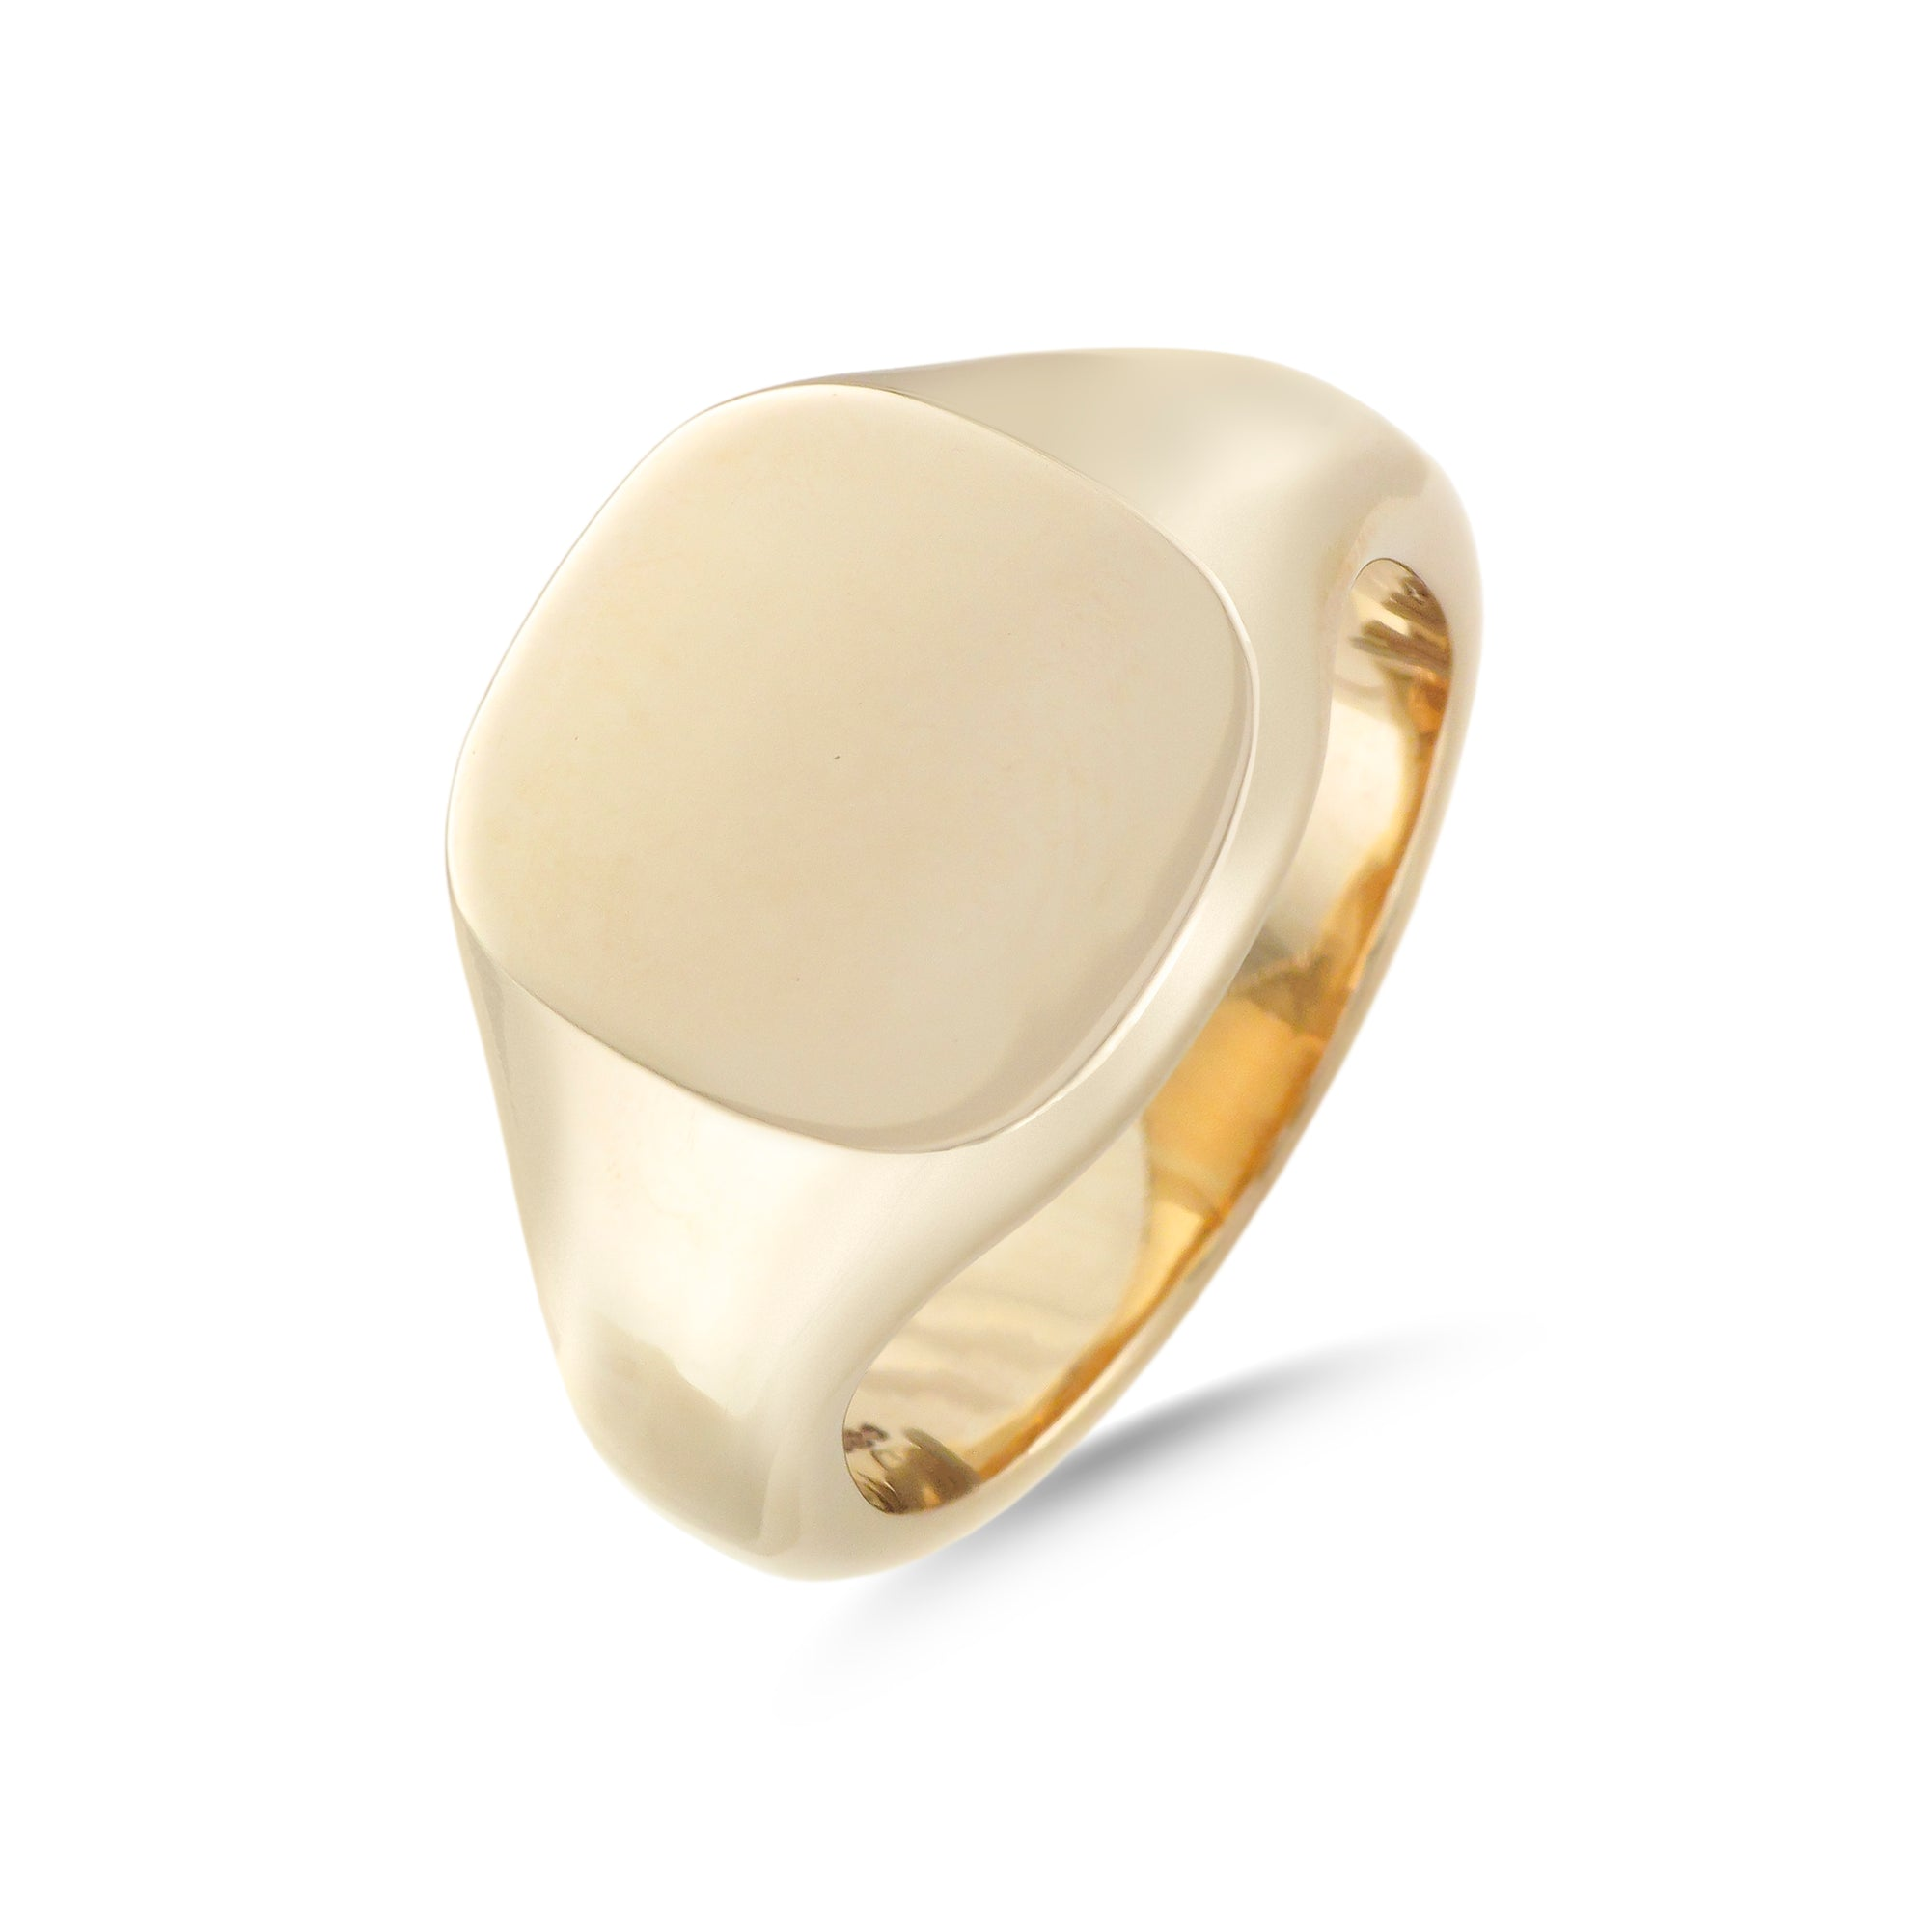 9ct Yellow Gold Cushion Signet Ring 15mm x 14mm